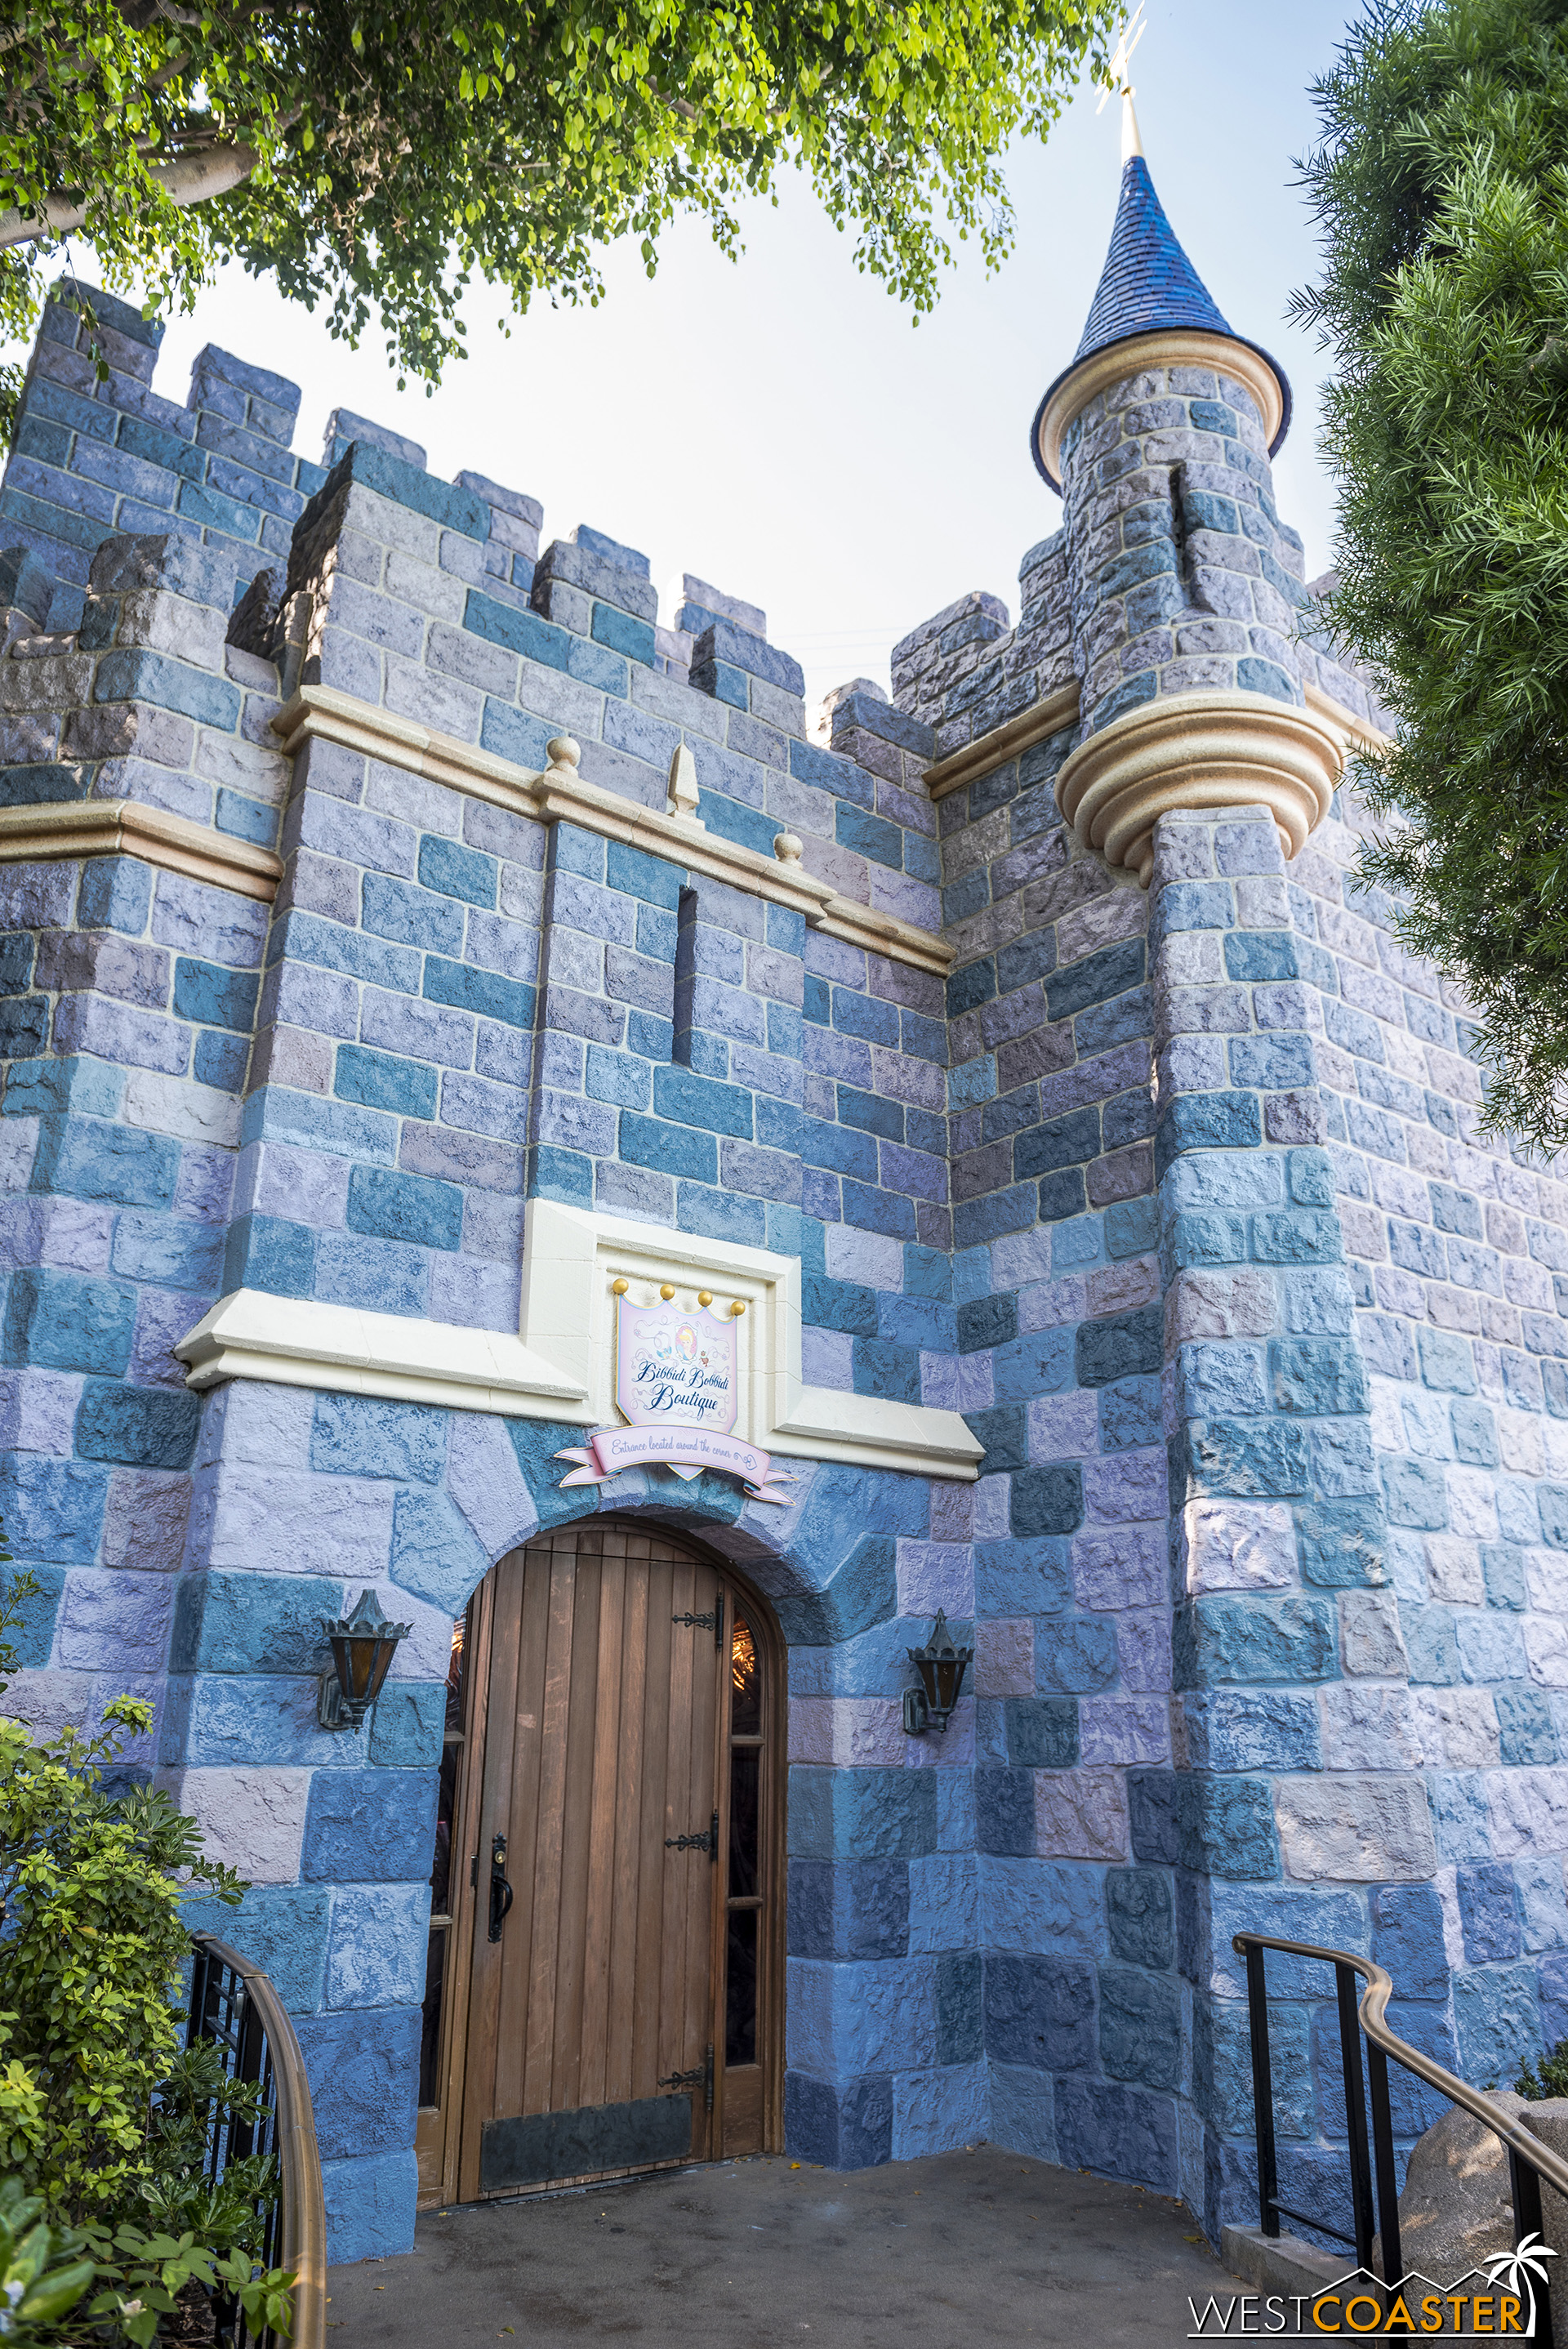 But the areas of the castle that have been unveiled showcase the fresh look of the park icon.